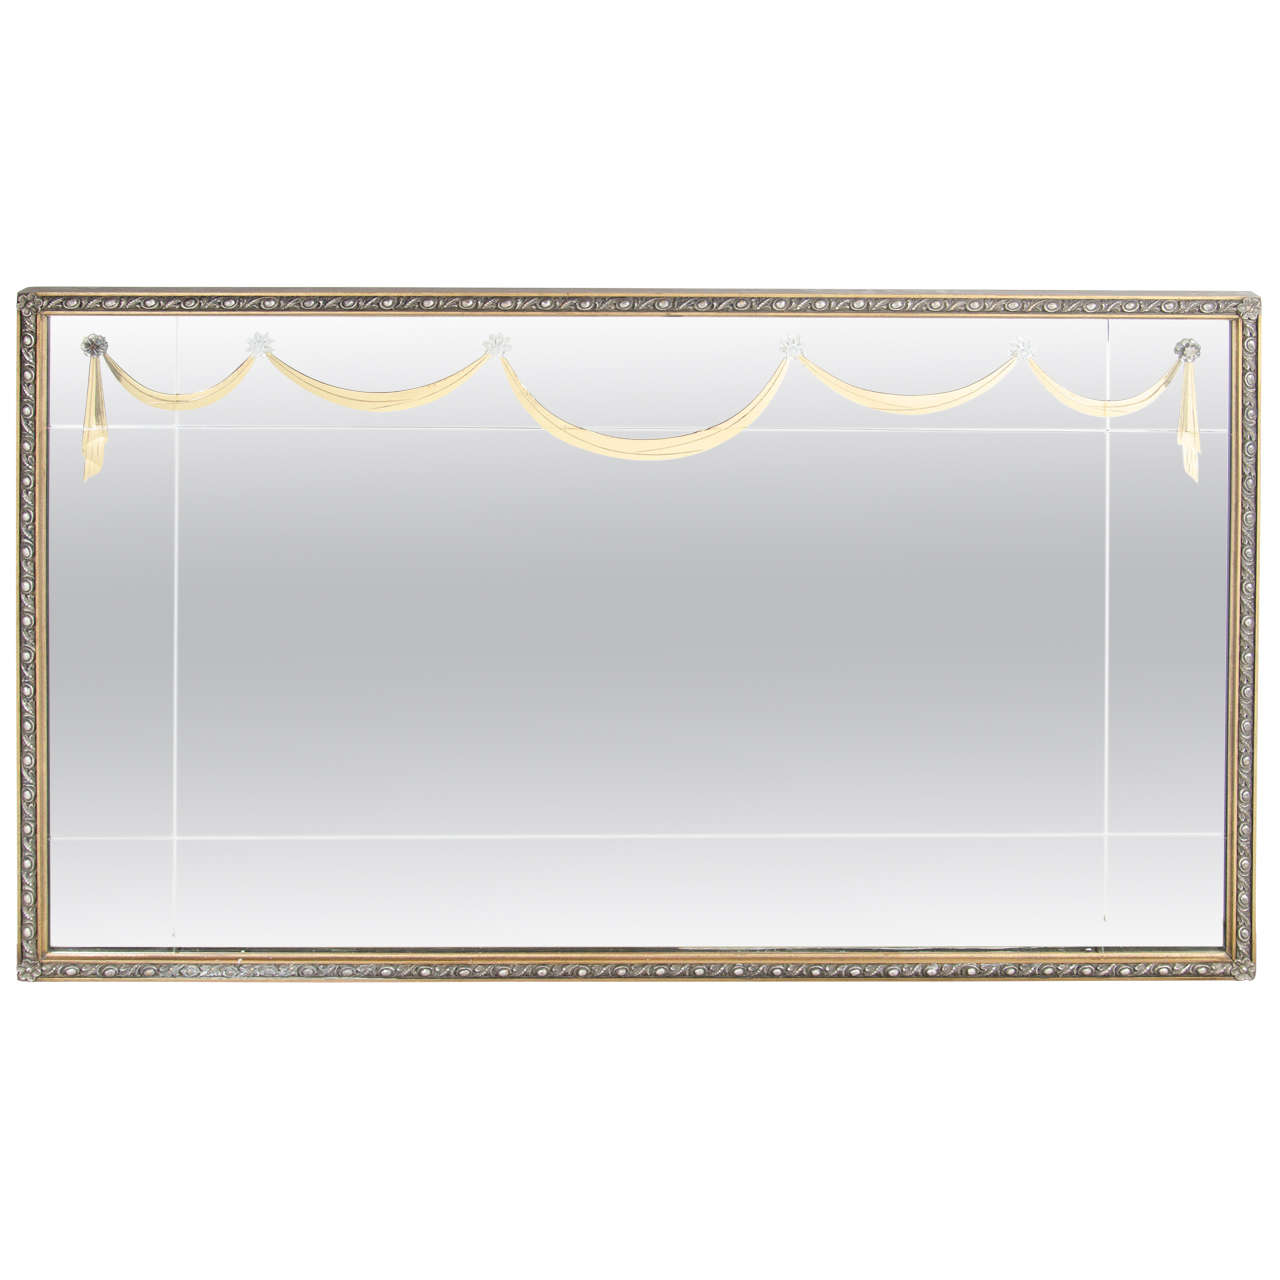 Glamorous  1940's  Gilt Mirror  with Lucite Appliqués By Grosfeld House